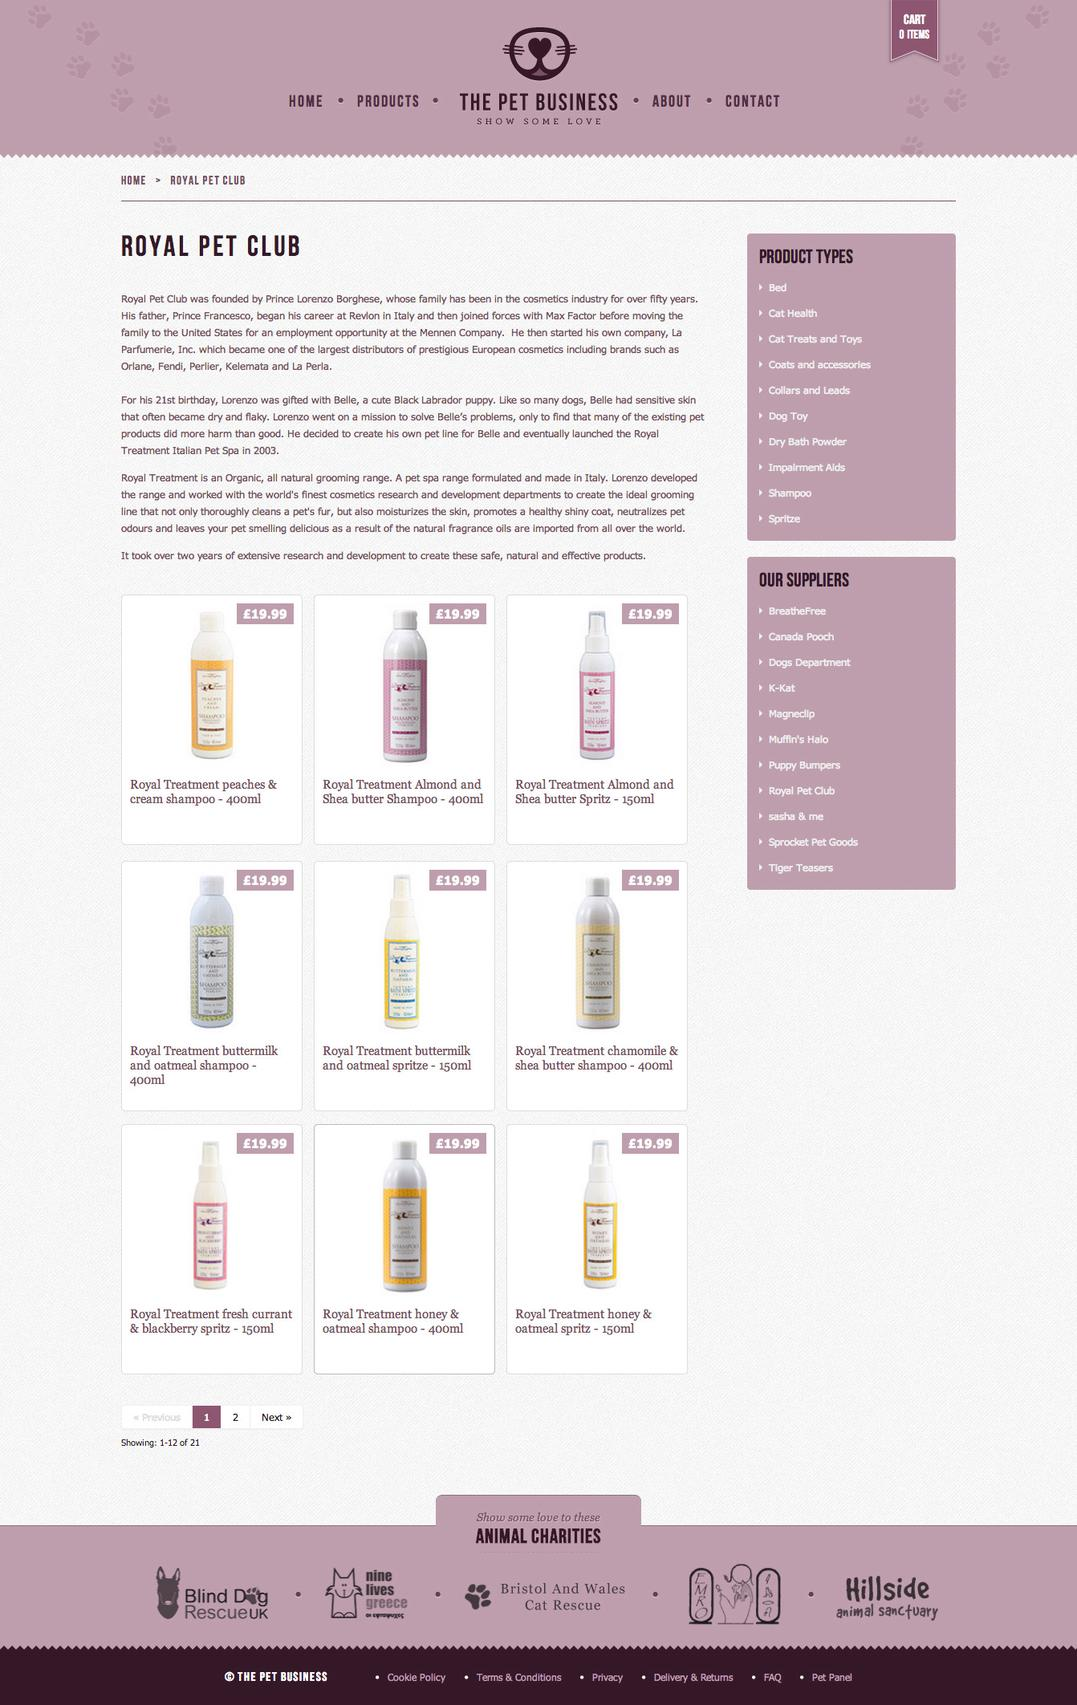 The Pet Business products page, showing a grid of products and filters.